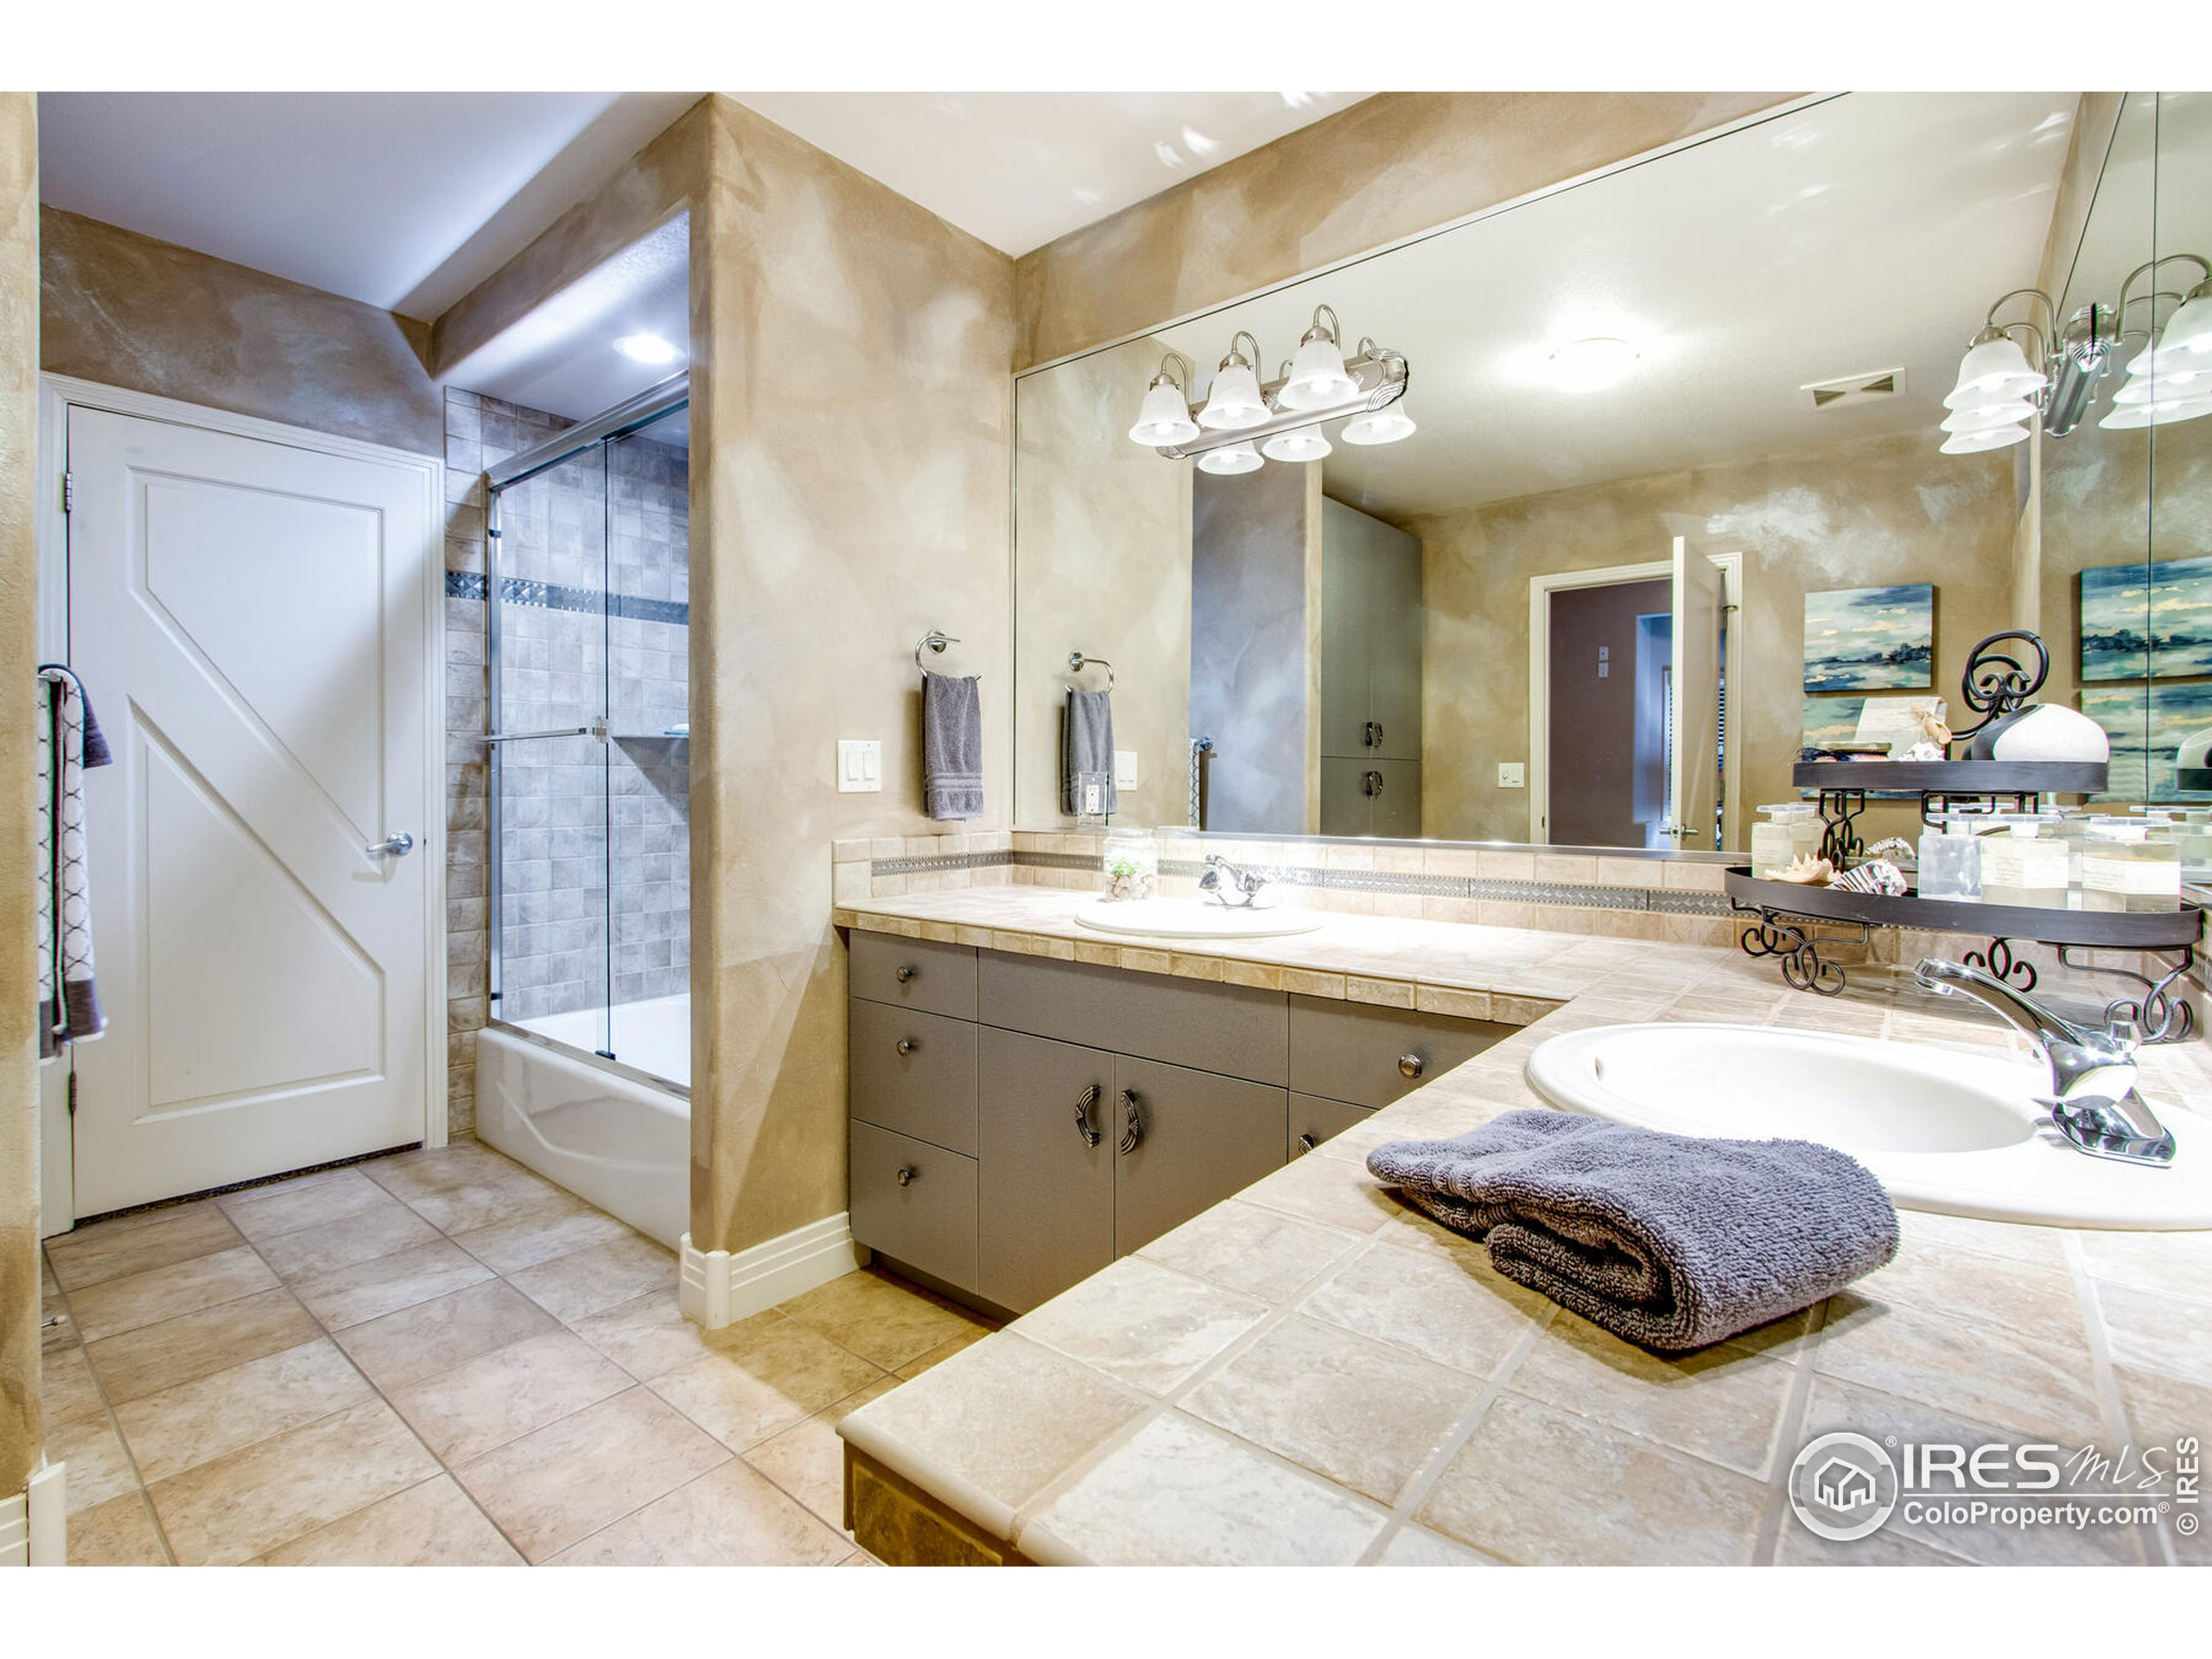 Lower Level Jack & Jill Bath with rare cast iron tub & shower with exceptional finishes